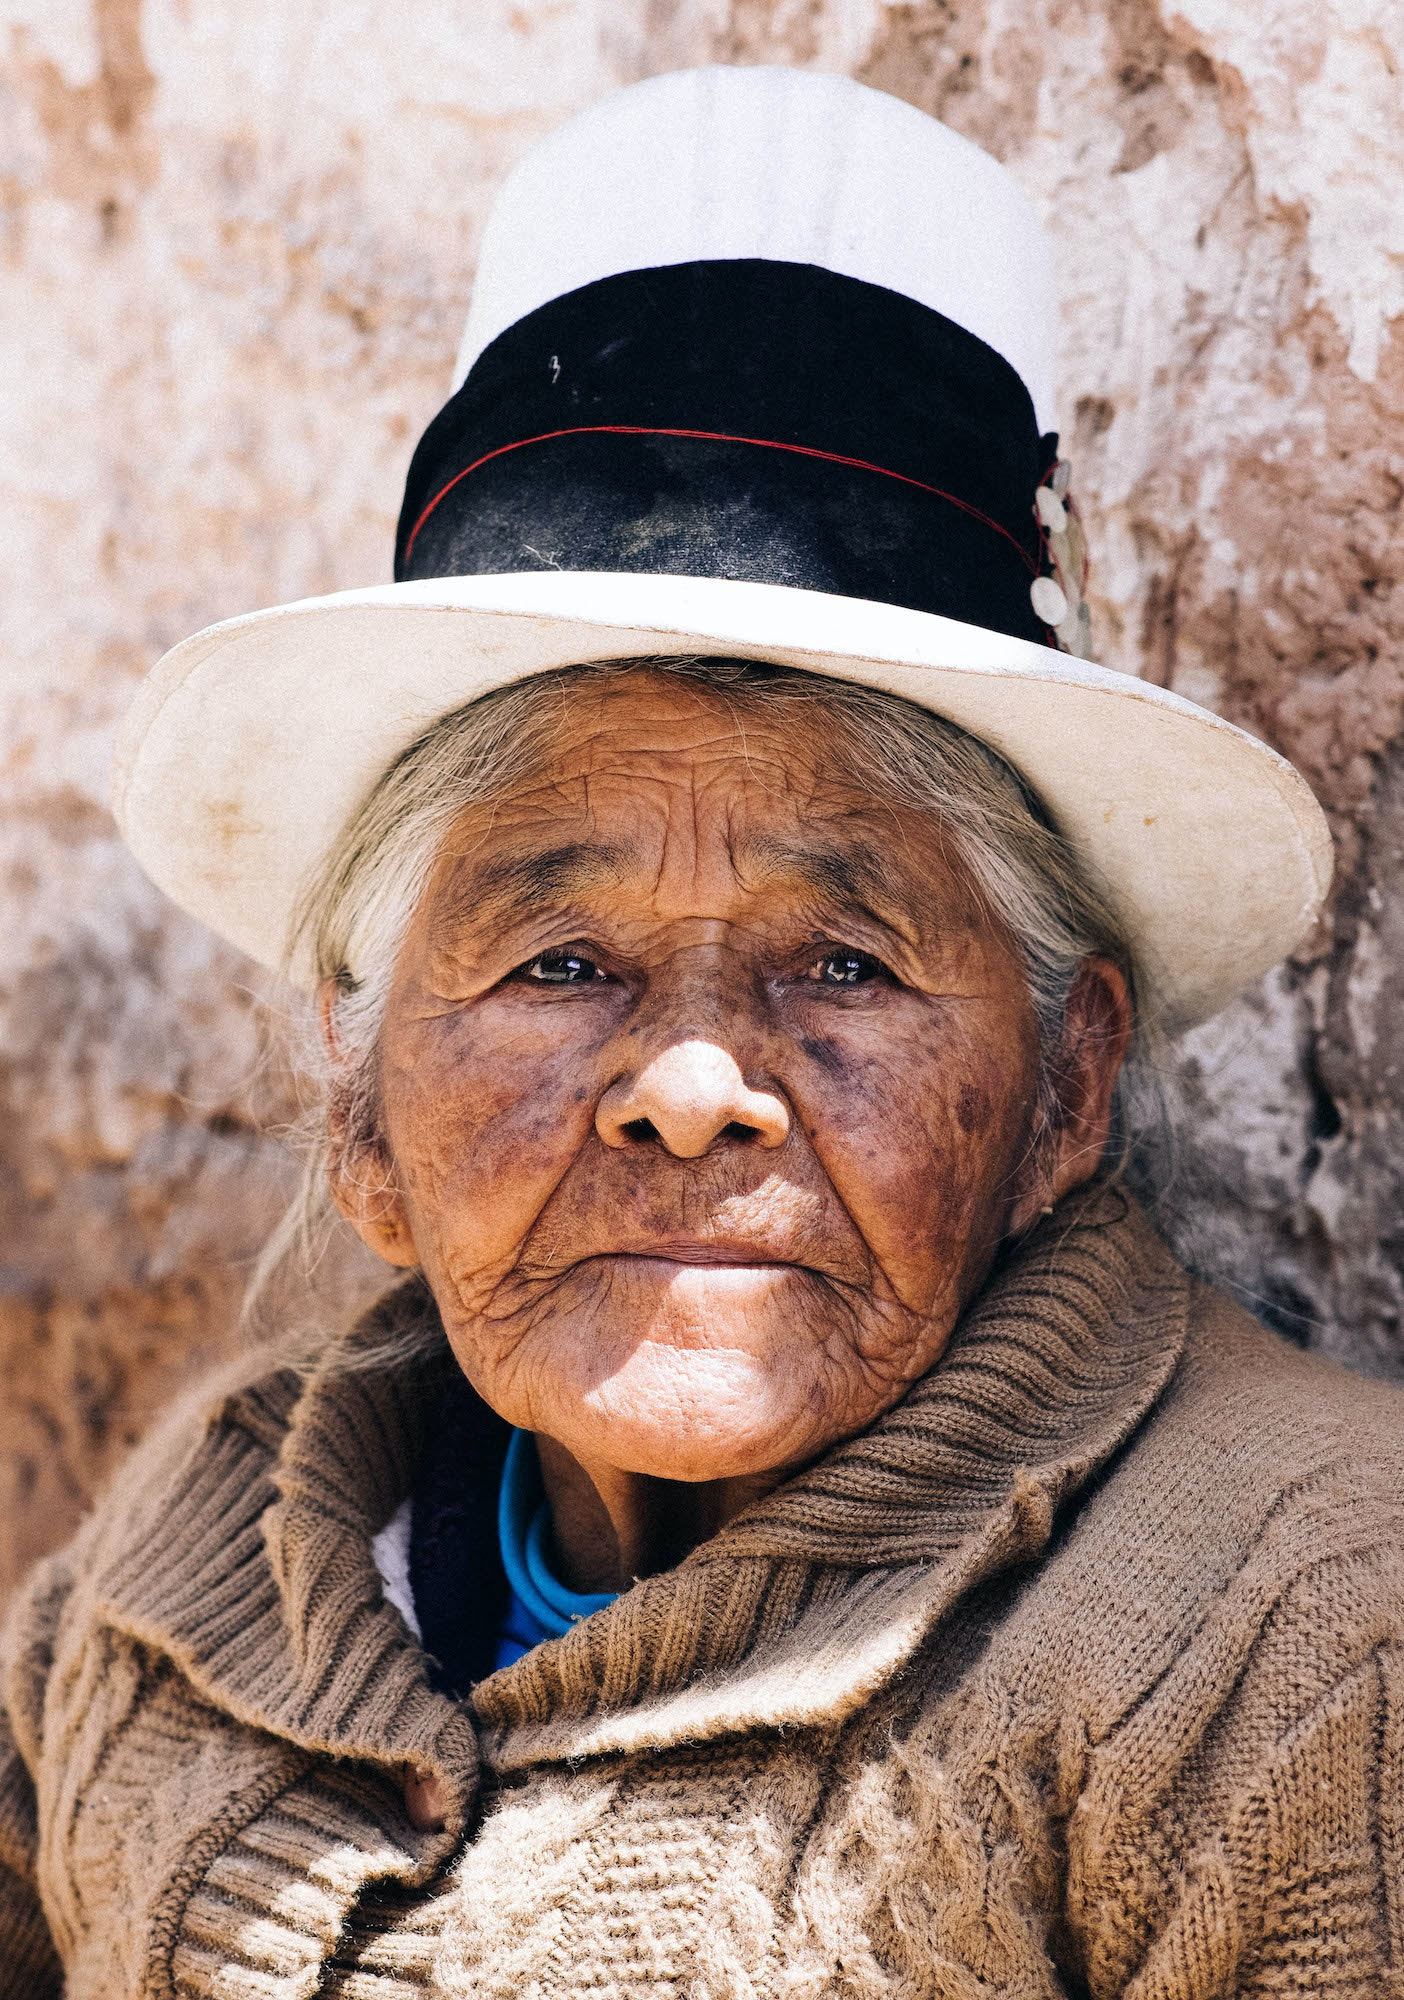 Local women wearing traditional top hats caught Laucht's eye while traveling in Peru.